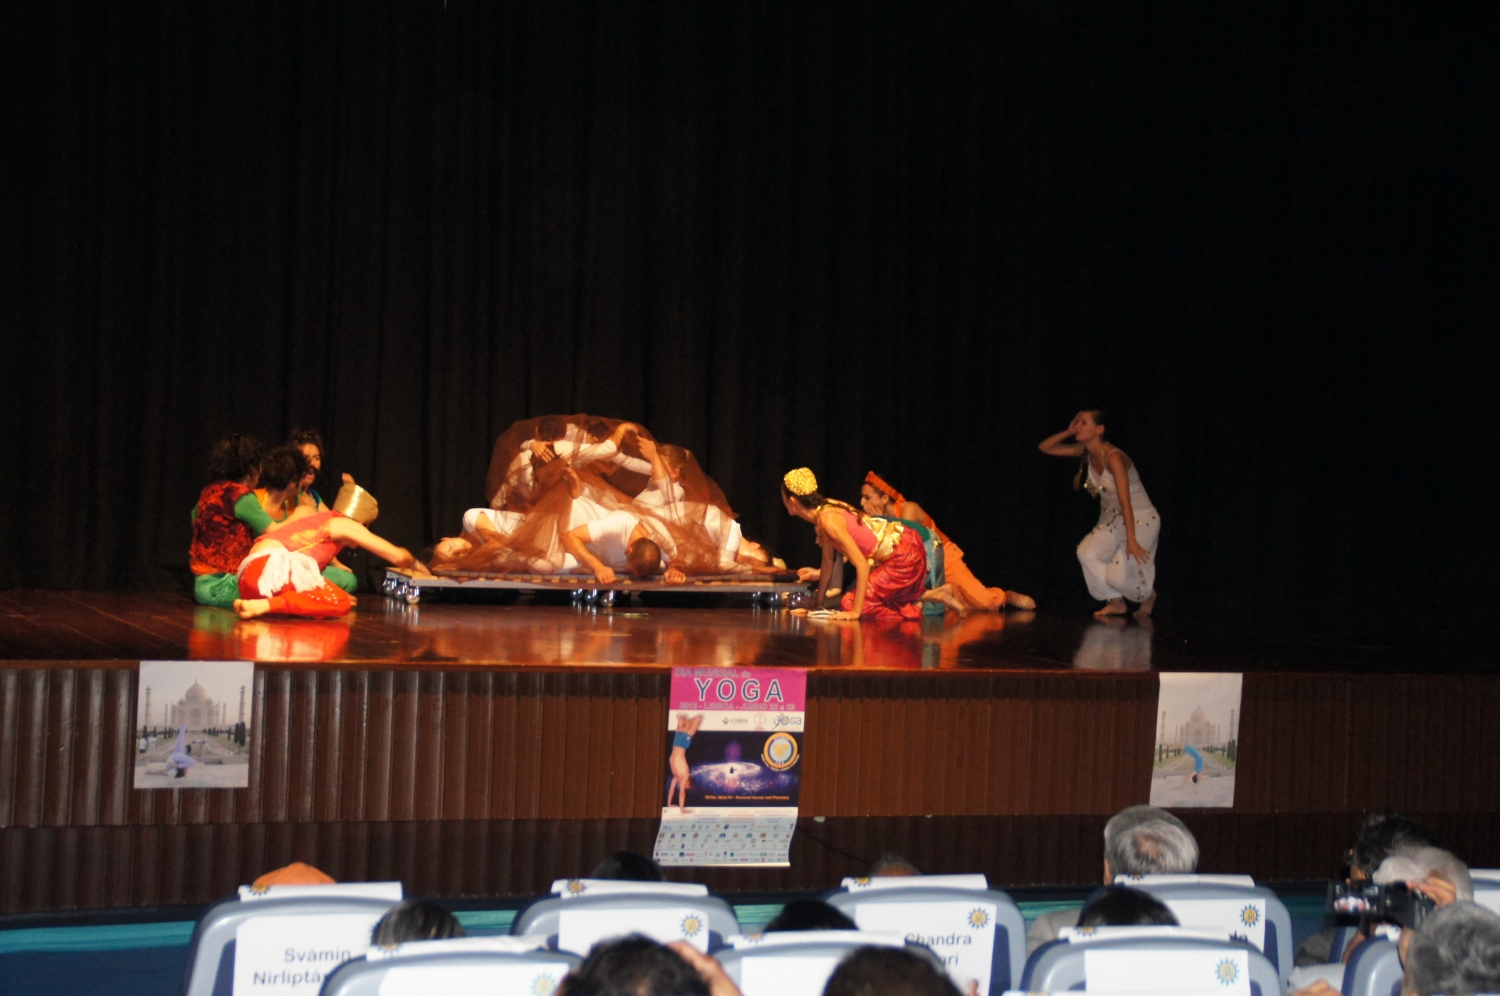 The Churning of the Ocean of Milk (Samudra Manthan)